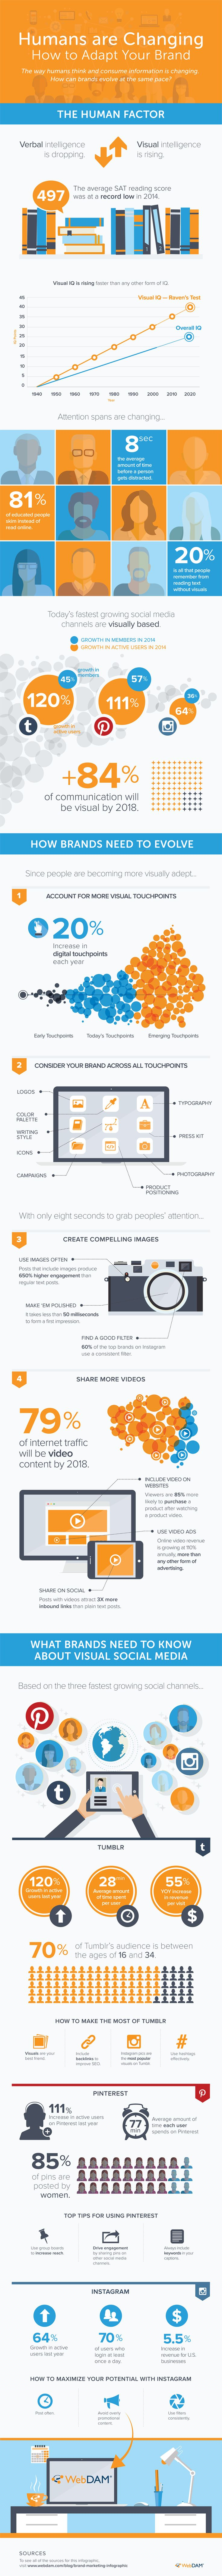 What Digital Marketers Need To Know About Visual Social Media - #infographic